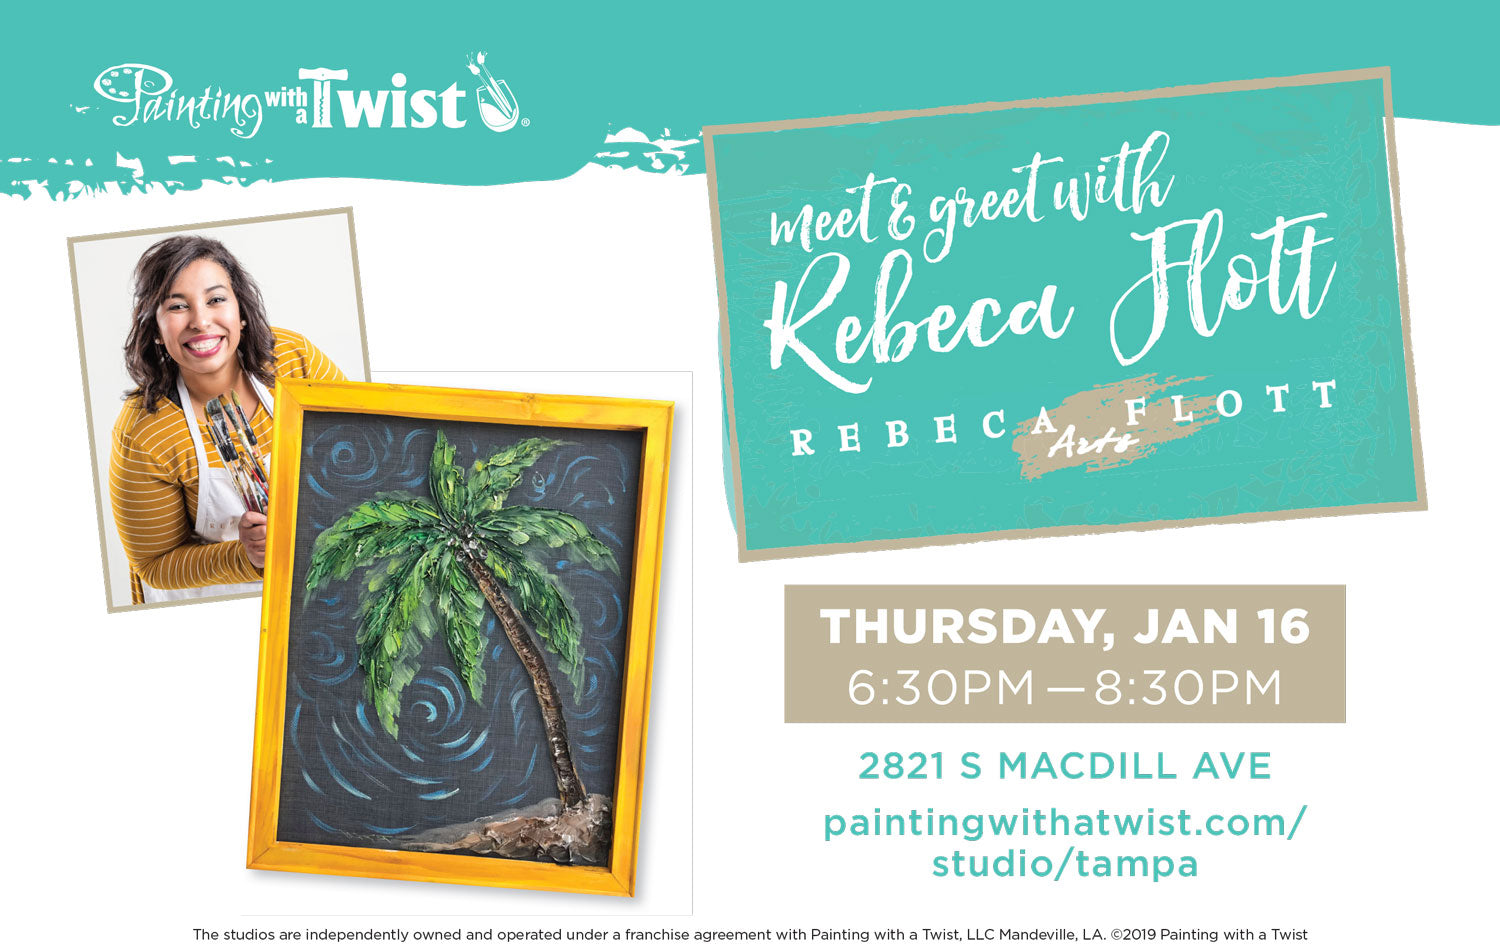 Meet and greet Rebeca Flott in Tampa, Florida